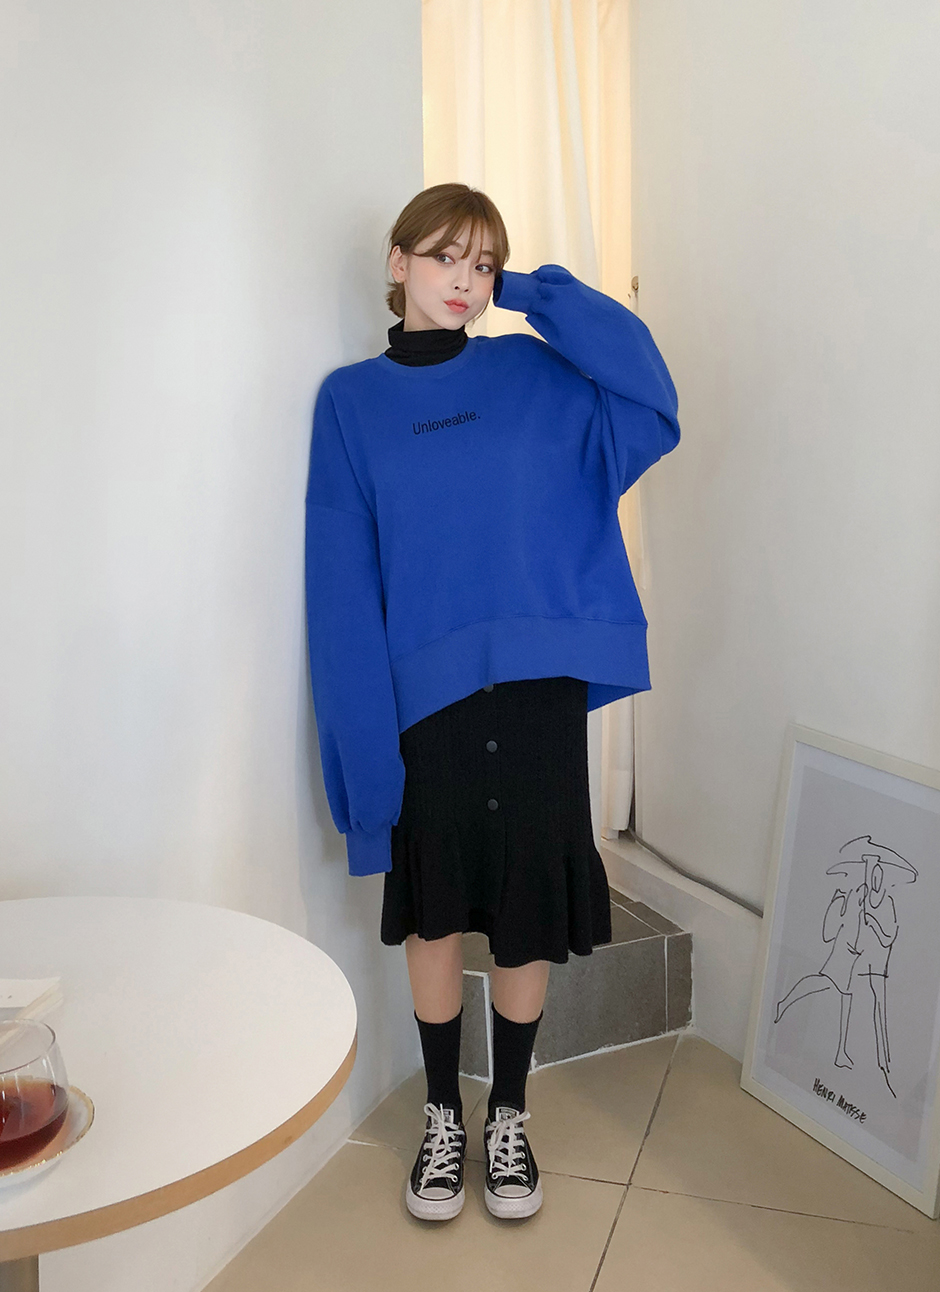 //cdn.nhanh.vn/cdn/store/29770/psCT/20190110/11071444/Unbalanced_Unique_Knit_Skirt_(2019_31_8).jpg